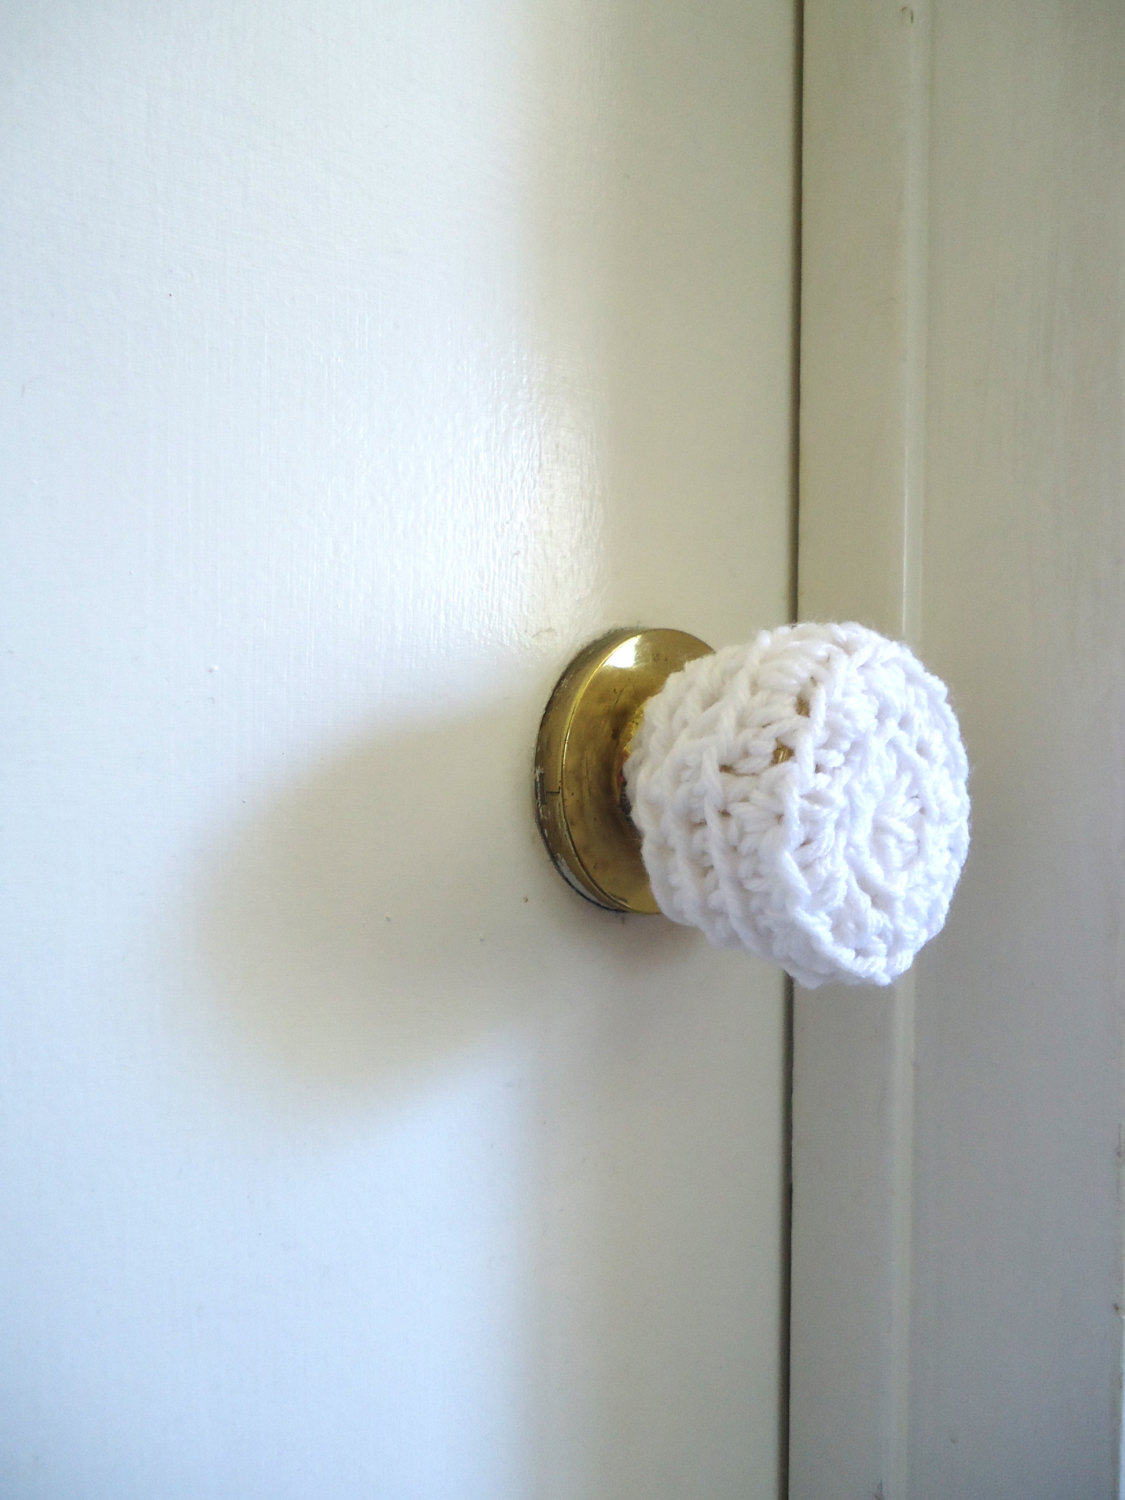 baby safety door knob covers photo - 1 & Baby safety door knob covers u2013 Door Knobs